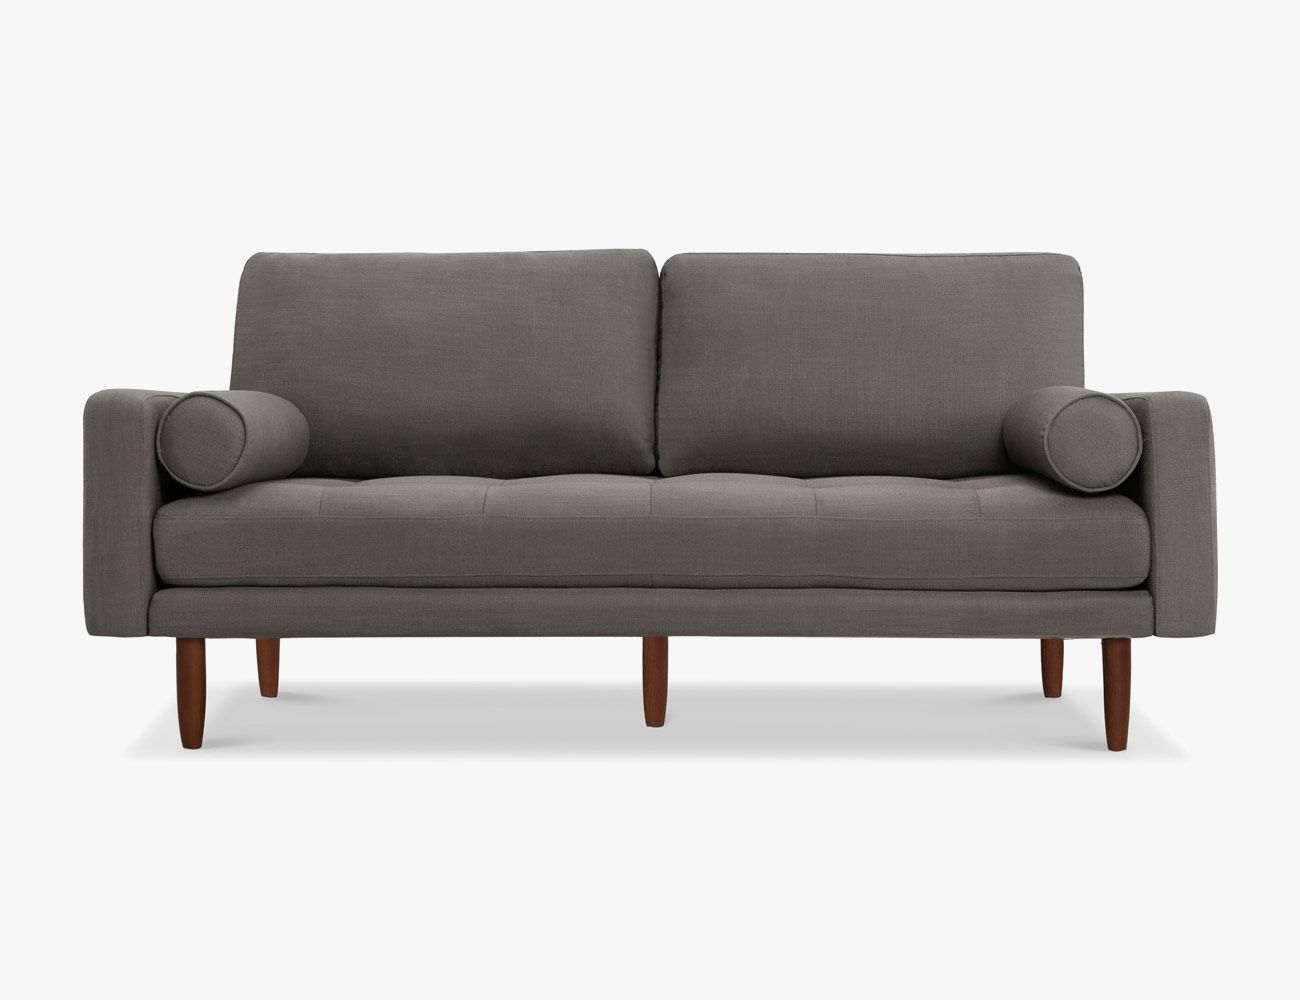 the 16 best sofas and couches you can buy in 2019 dc house living rh pinterest com